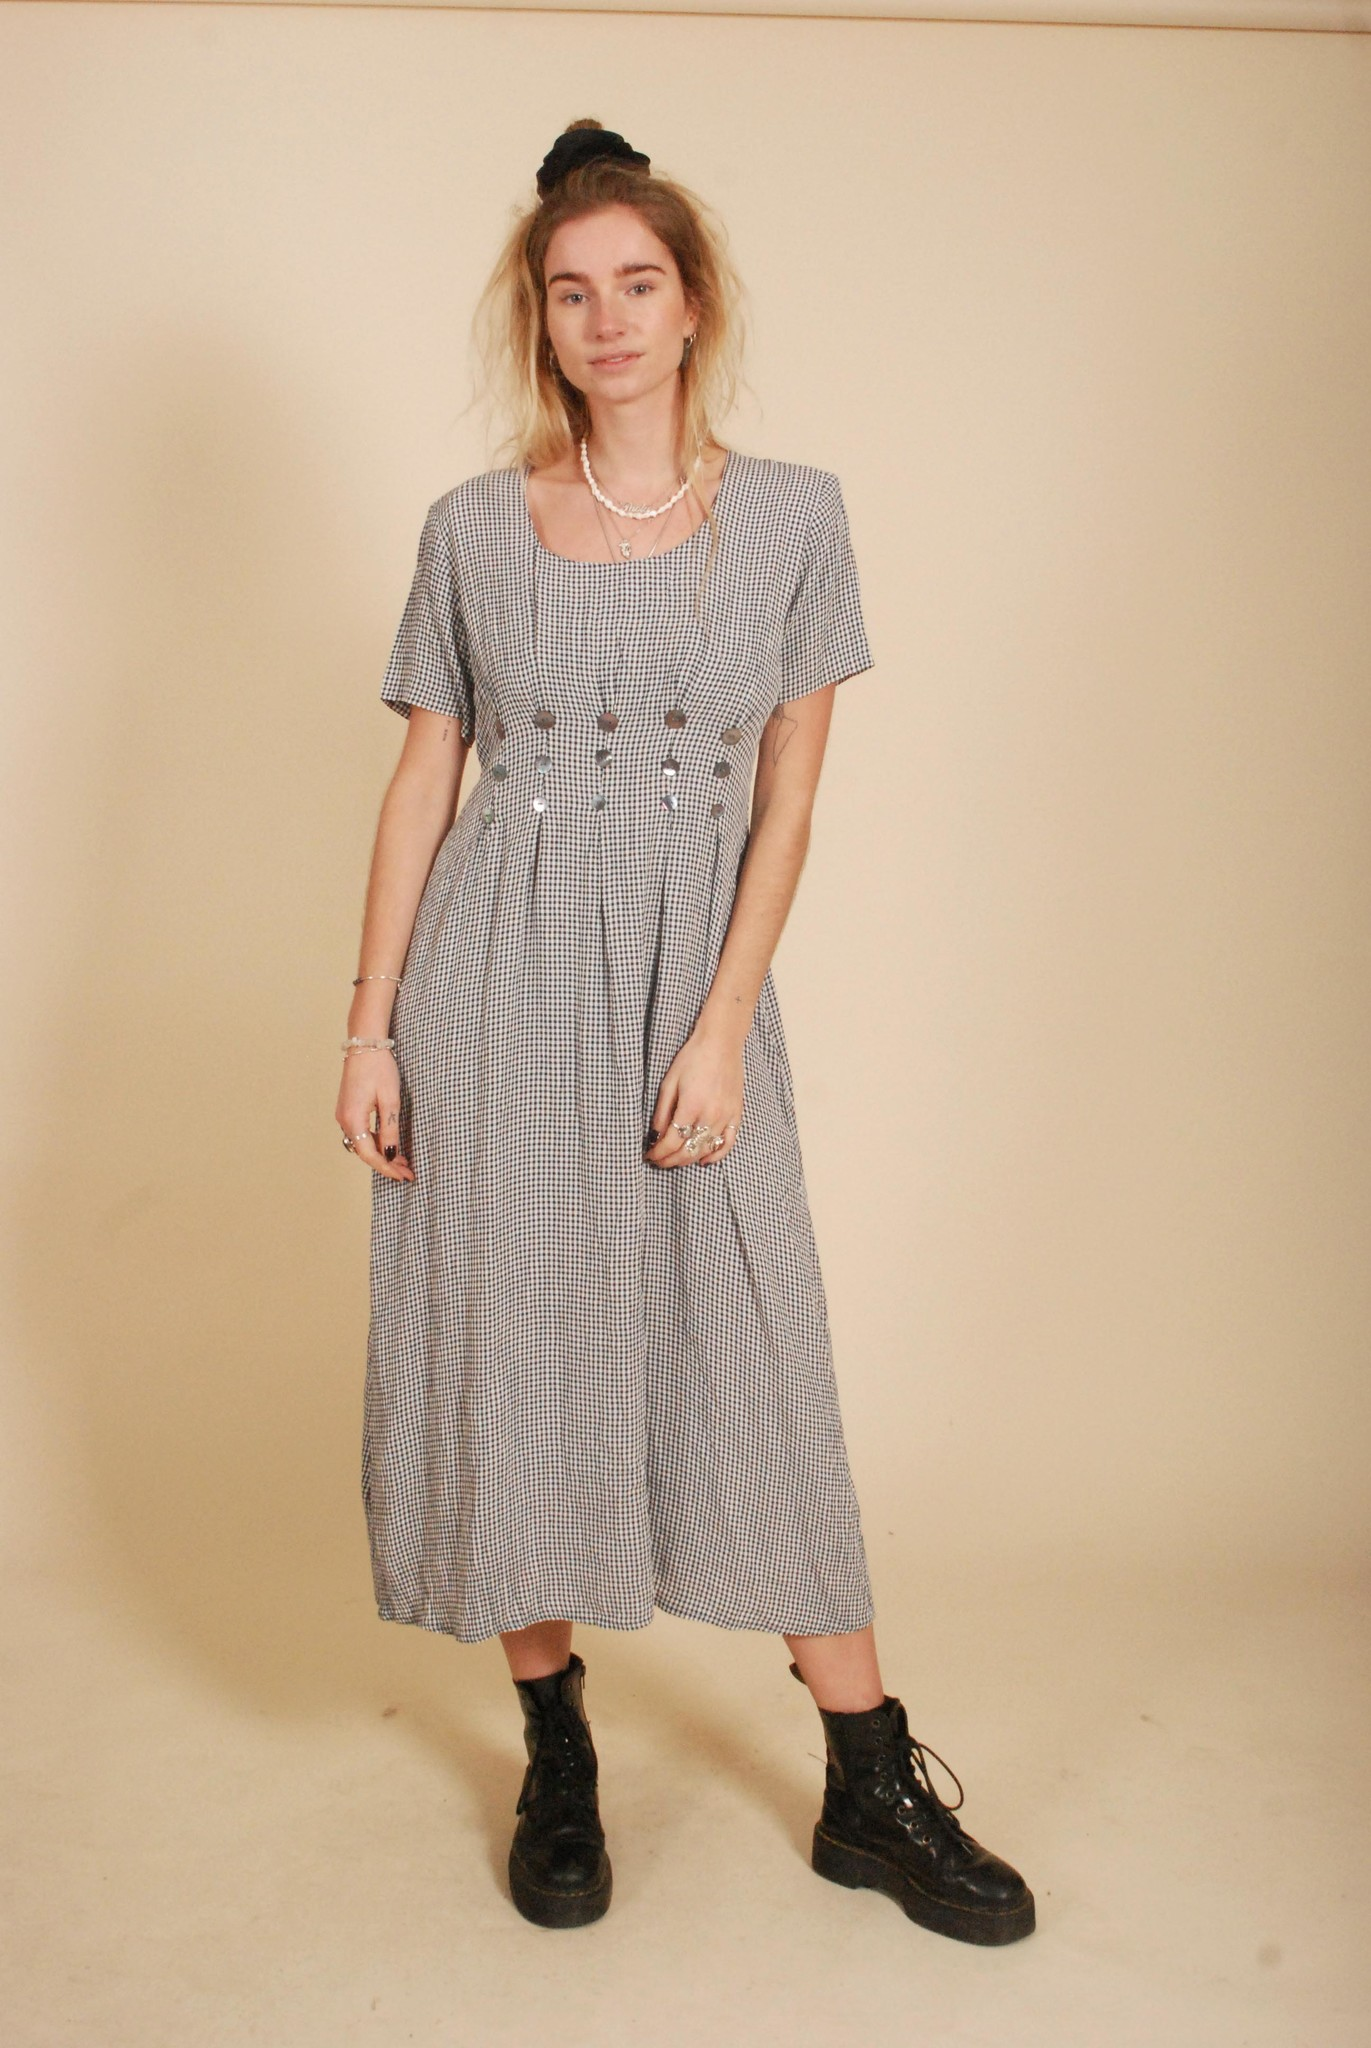 Classic 90s dress with all-over print